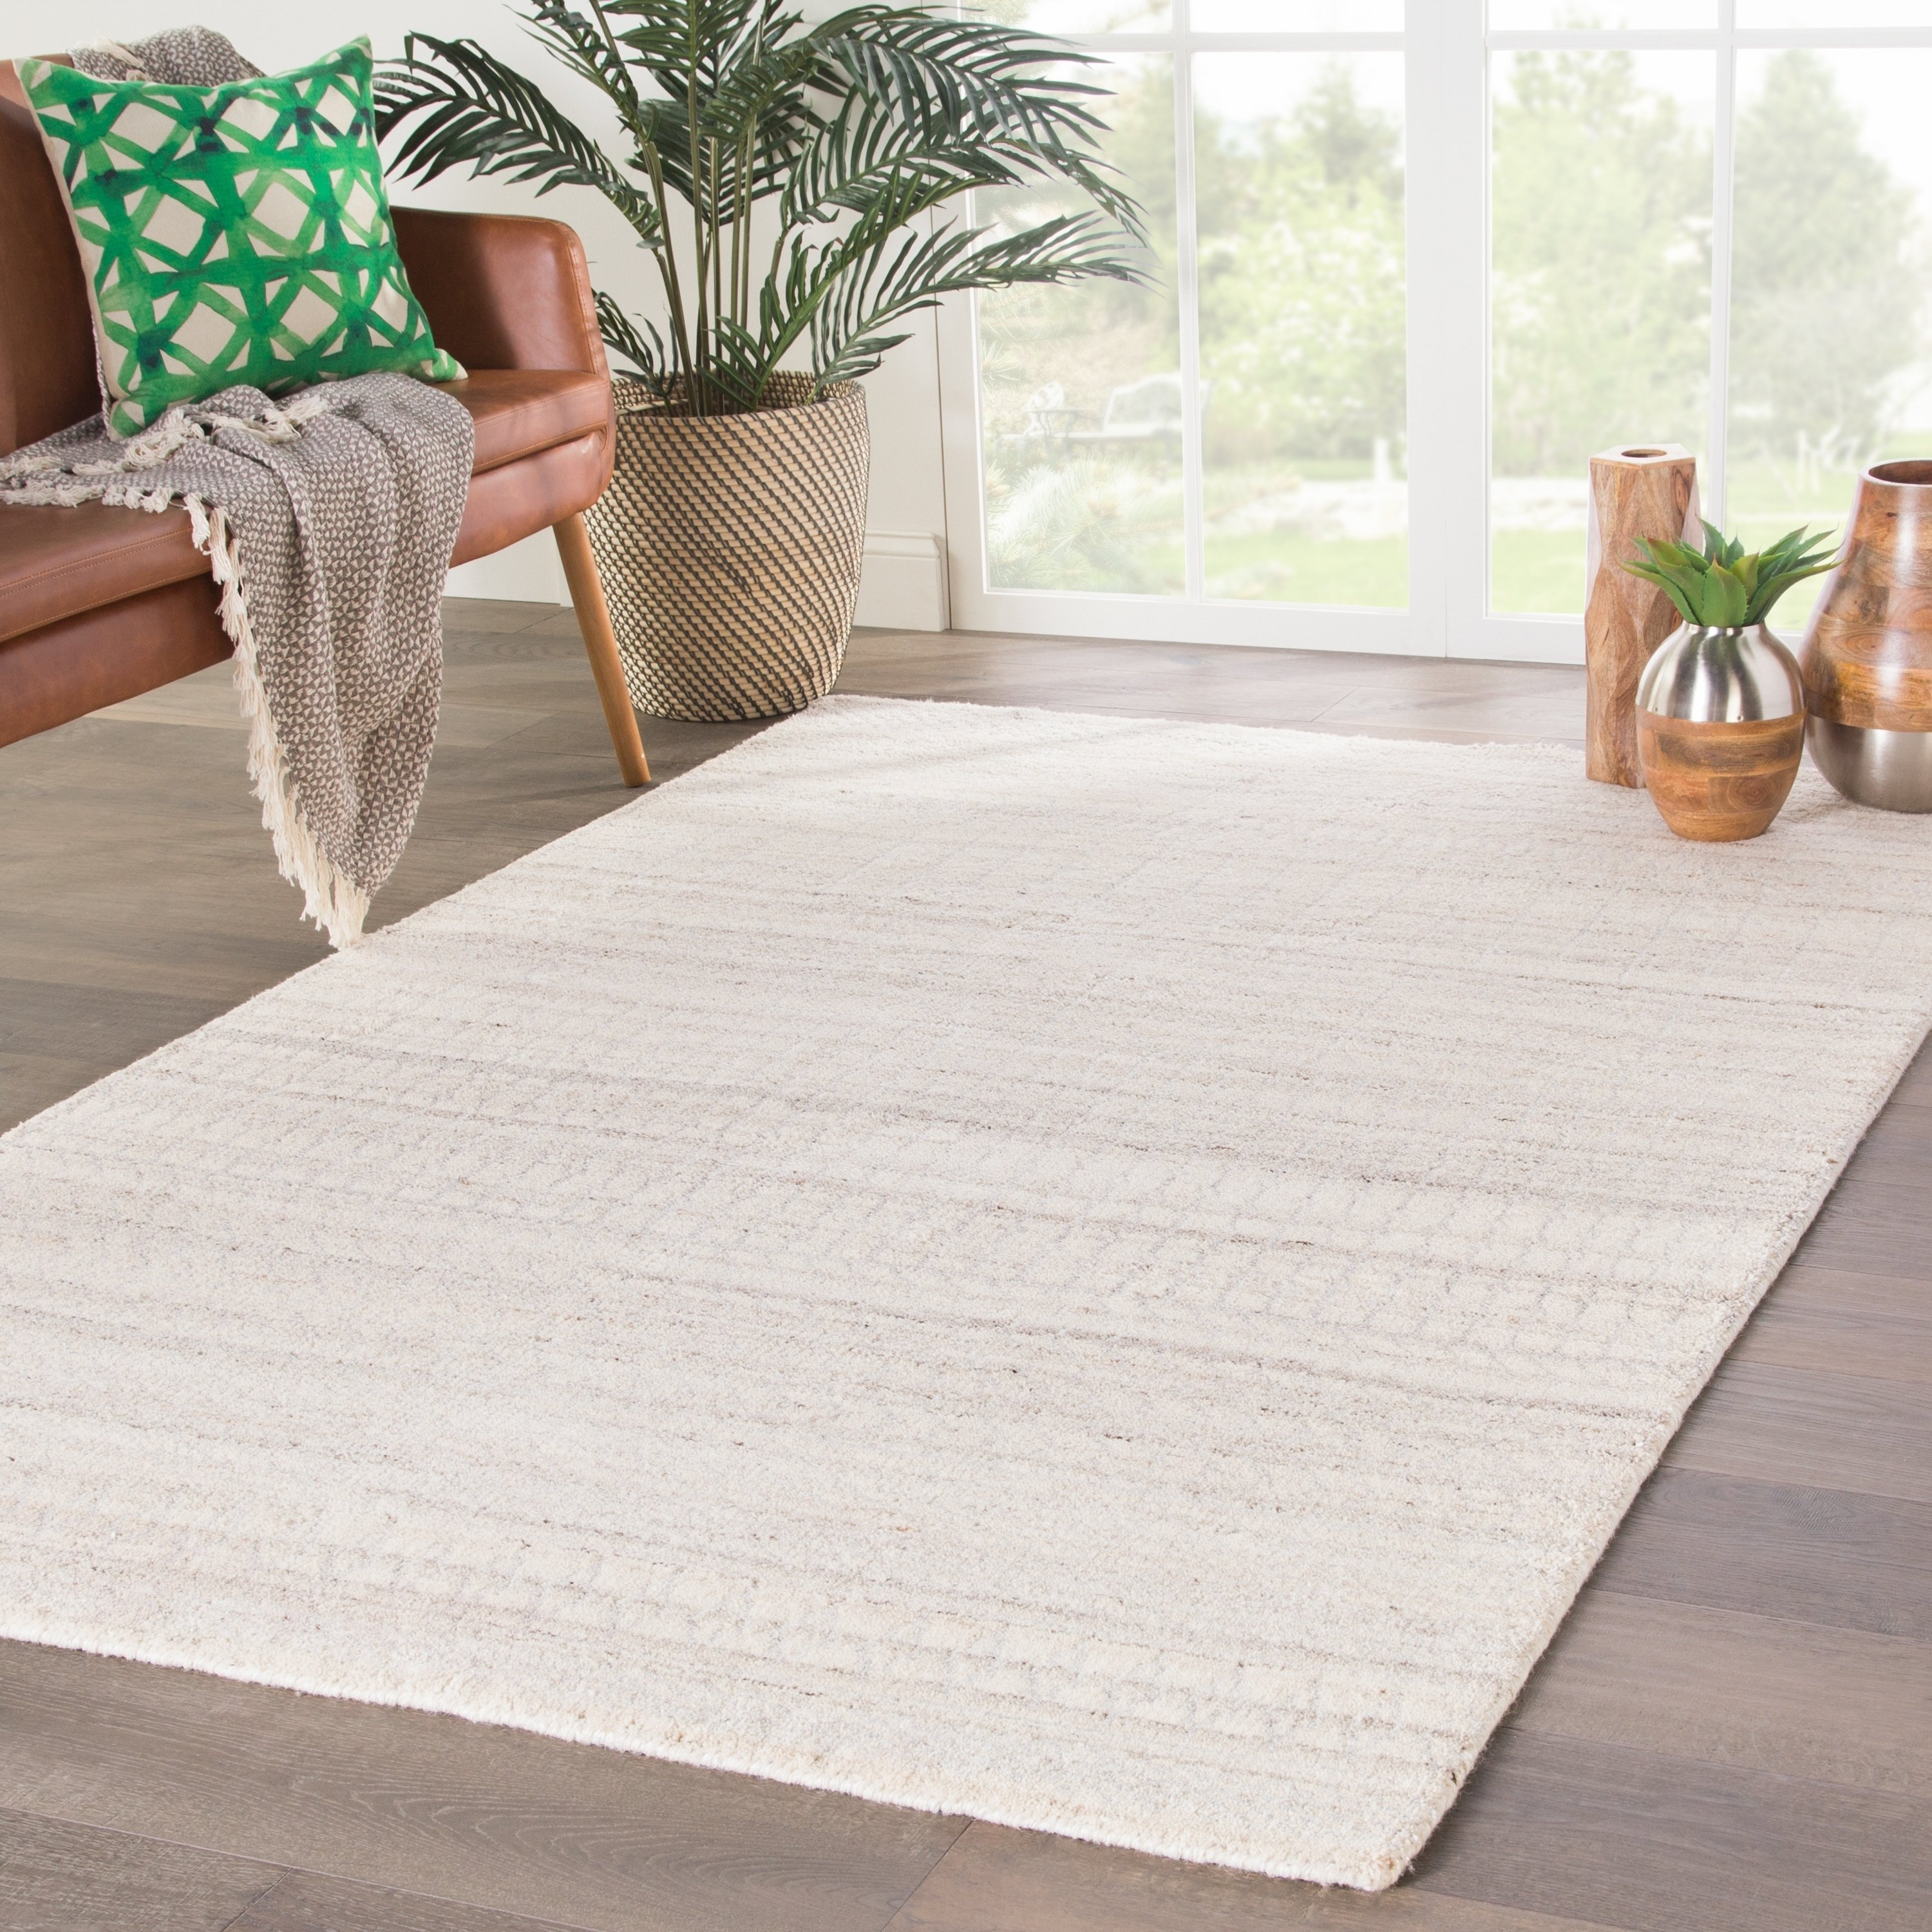 Herrick Hand Knotted Trellis Ivory Silver Area Rug 10 X 14 10 X 14 Ivory Silver Gray Juniper Home Area Rugs Rugs Rug Shapes